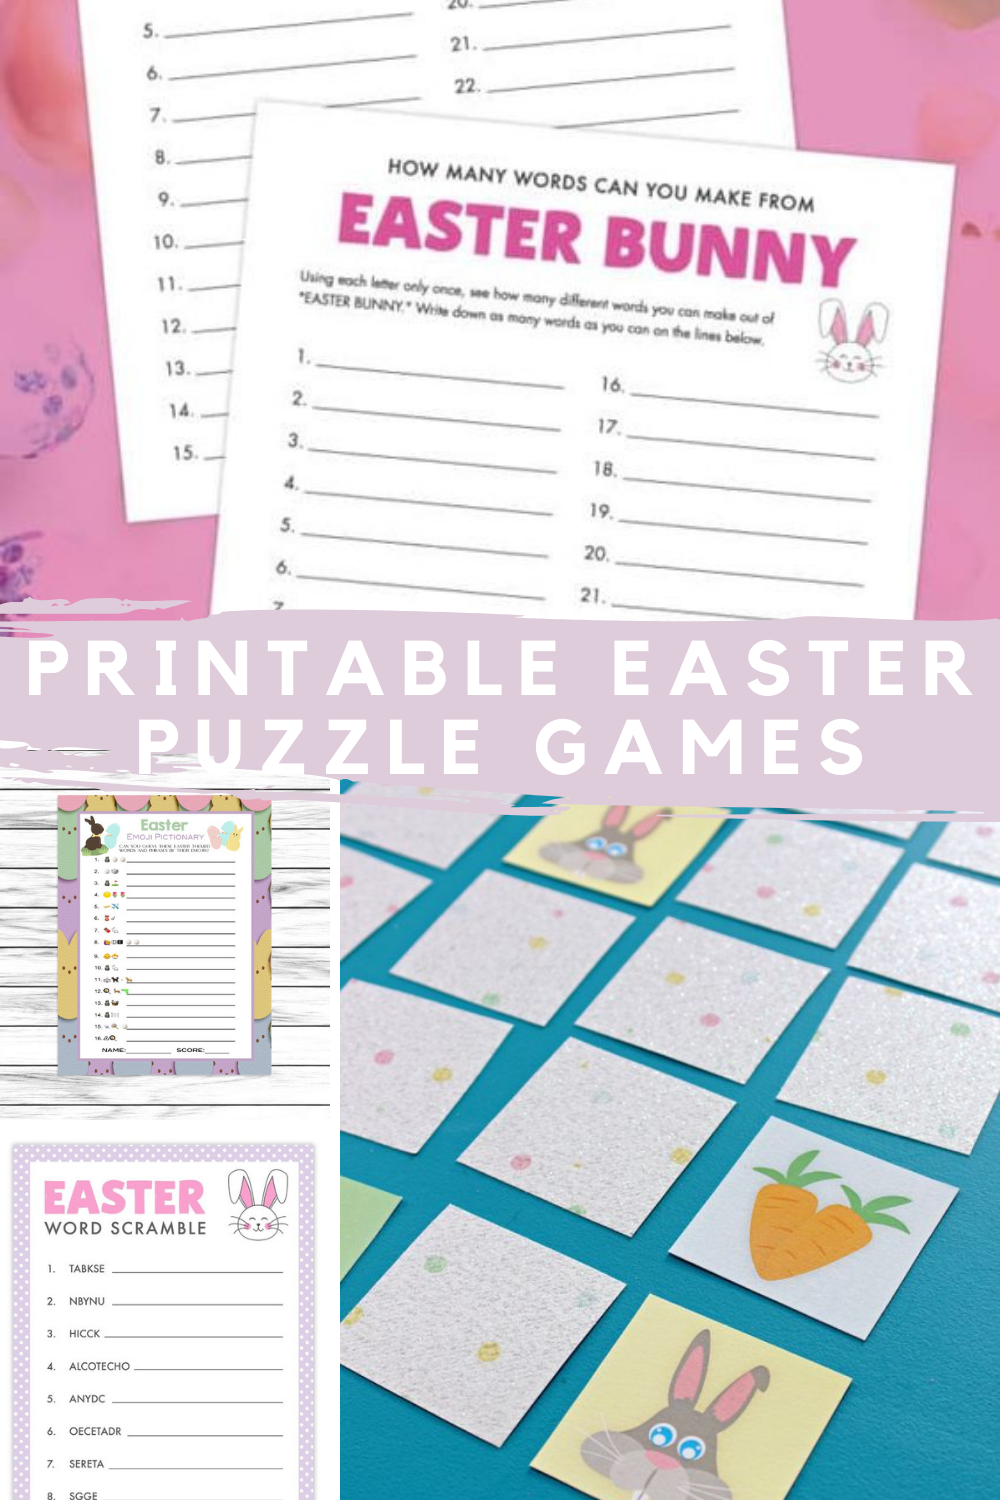 Printable Easter Games Puzzle